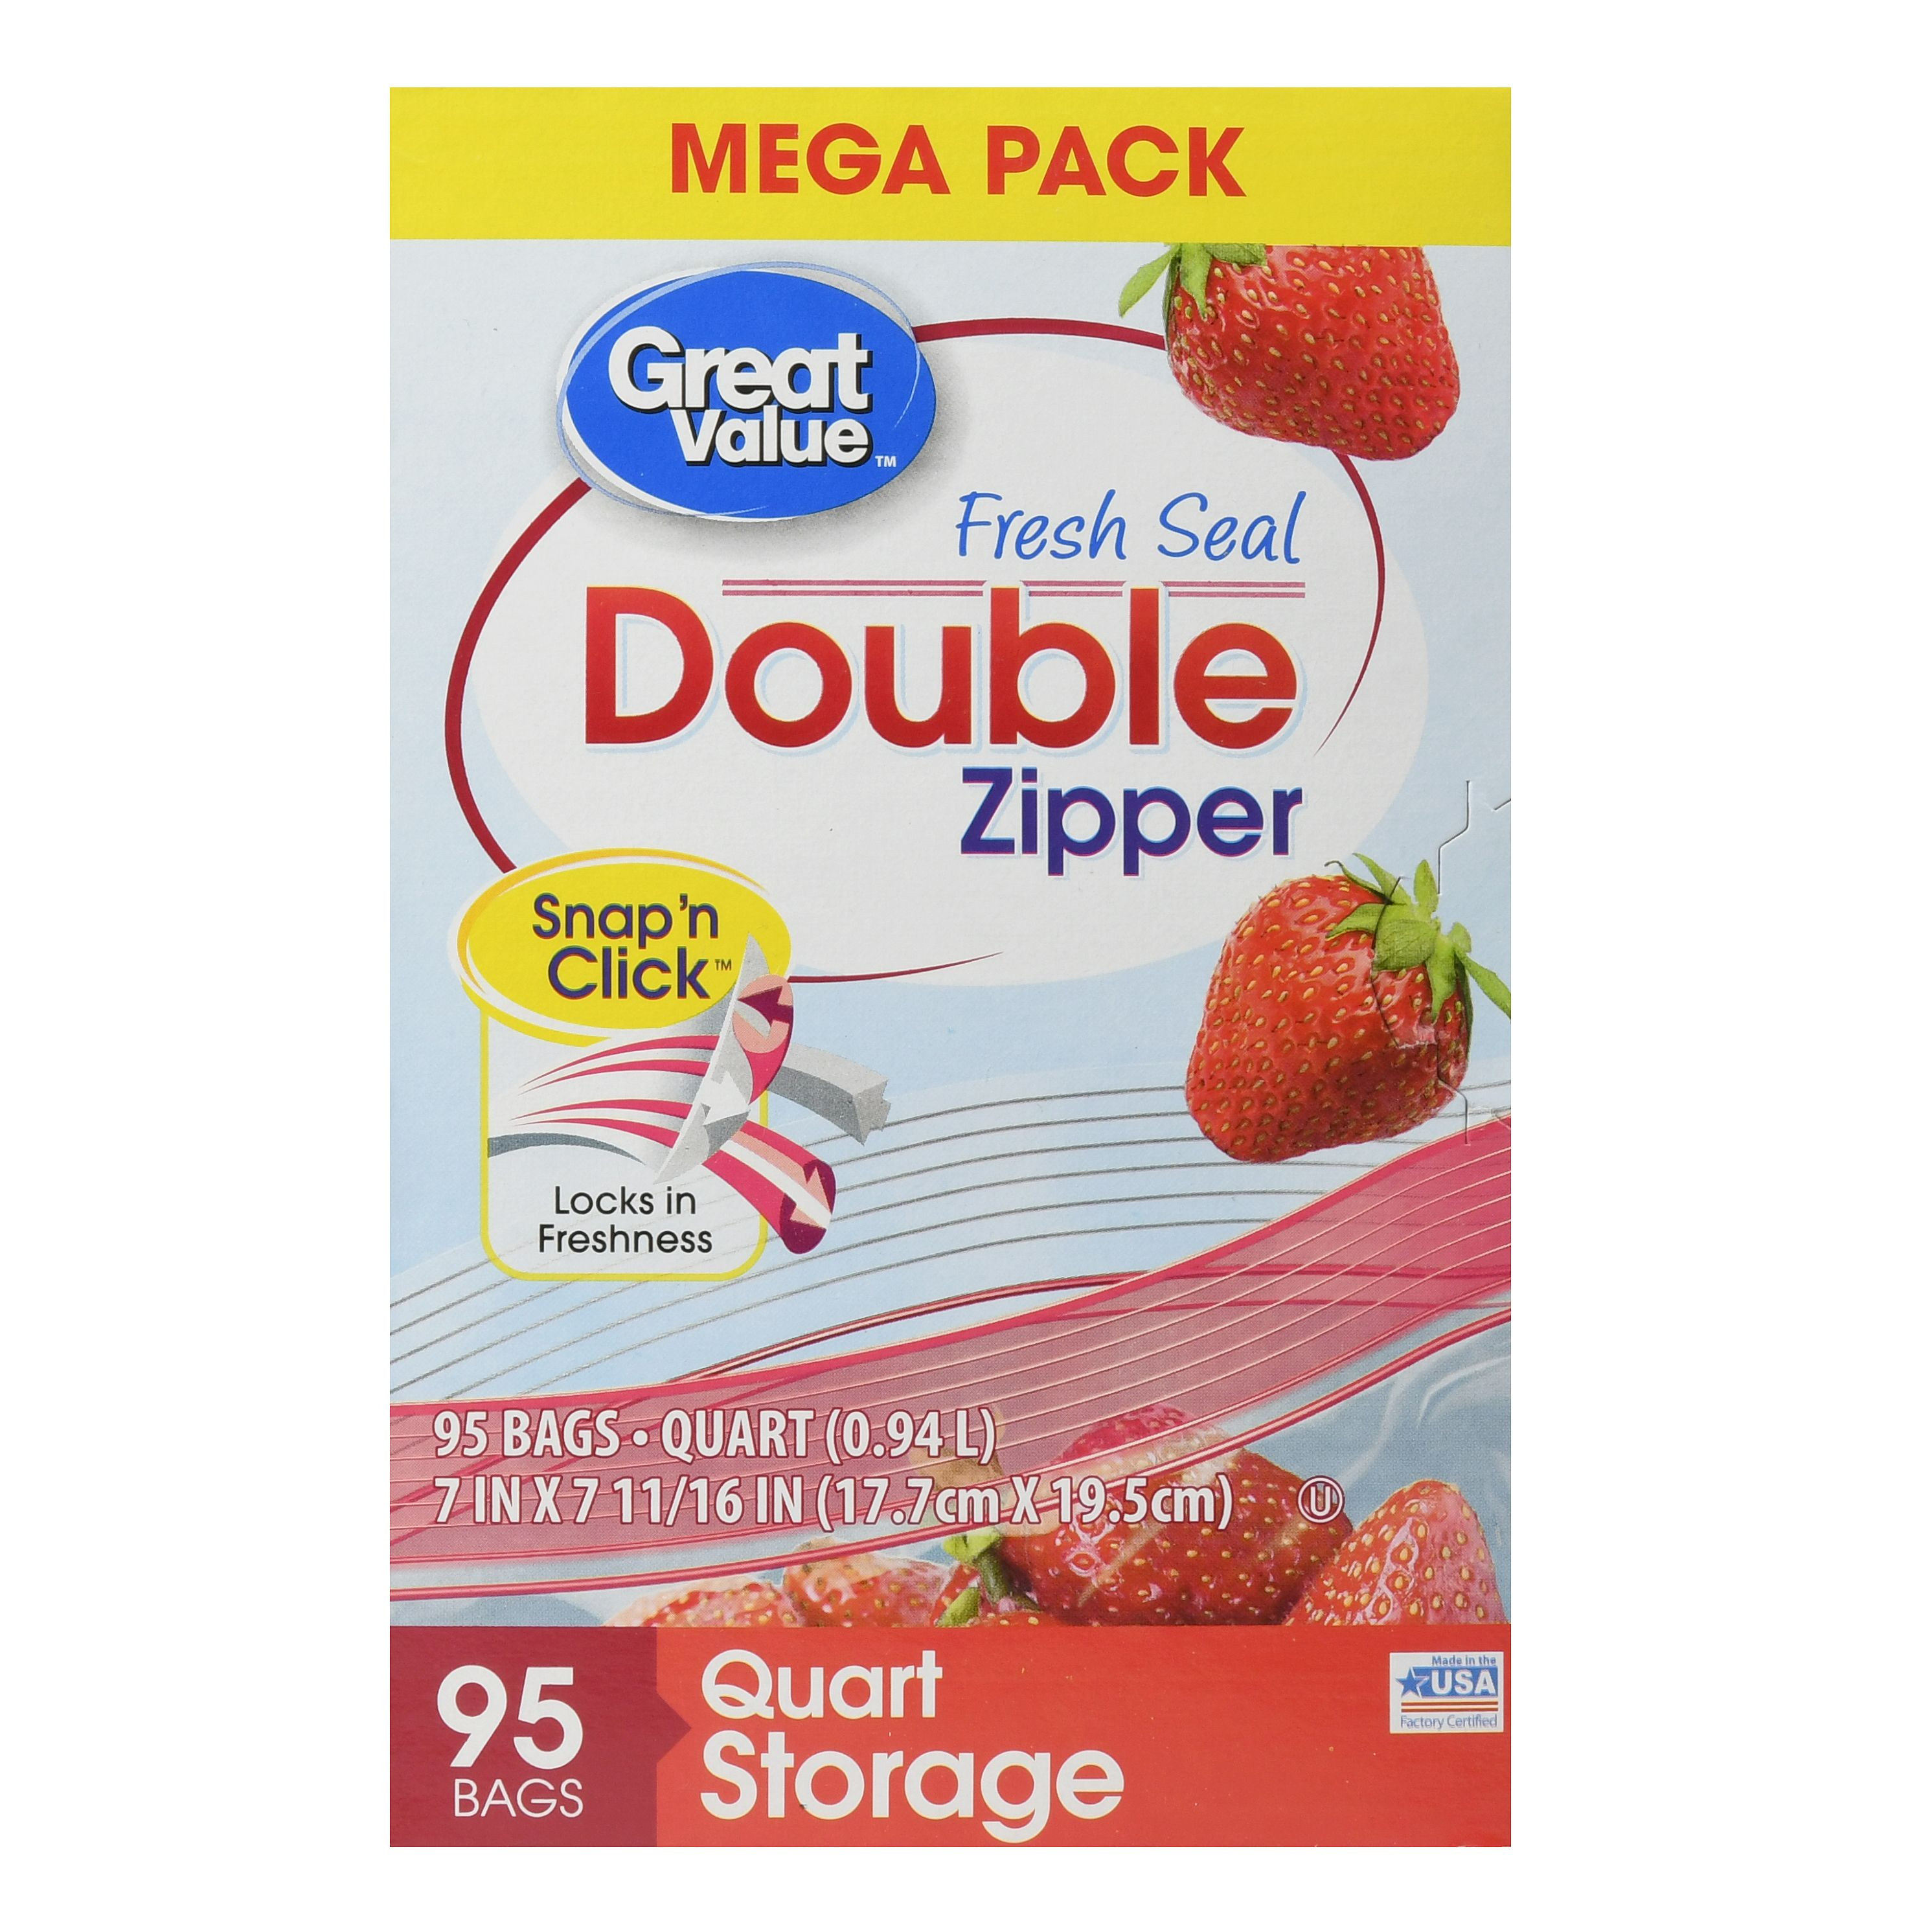 Great Value Fresh Seal Double Zipper Bags, Mega Pack, Quart, 95 Count